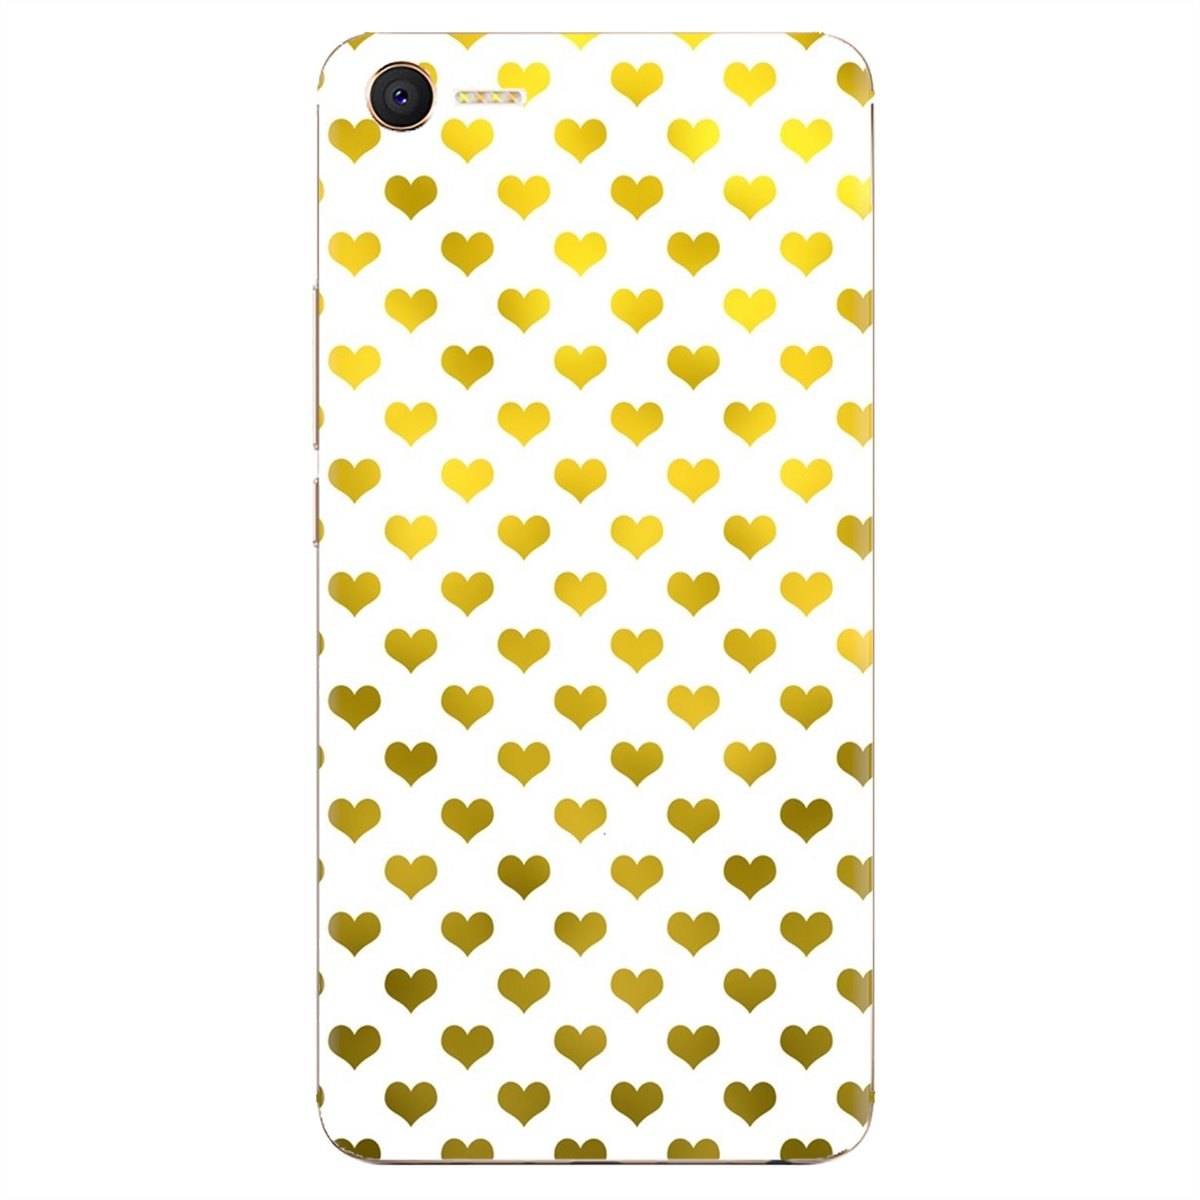 Pink And Yellow Wallpaper For Samsung Galaxy Note 2 3 4 5 8 9 S2 S3 S4 S5 Mini S6 S7 Edge S8 S9 Plus Designs Silicone Phone Case Half Wrapped Cases Aliexpress